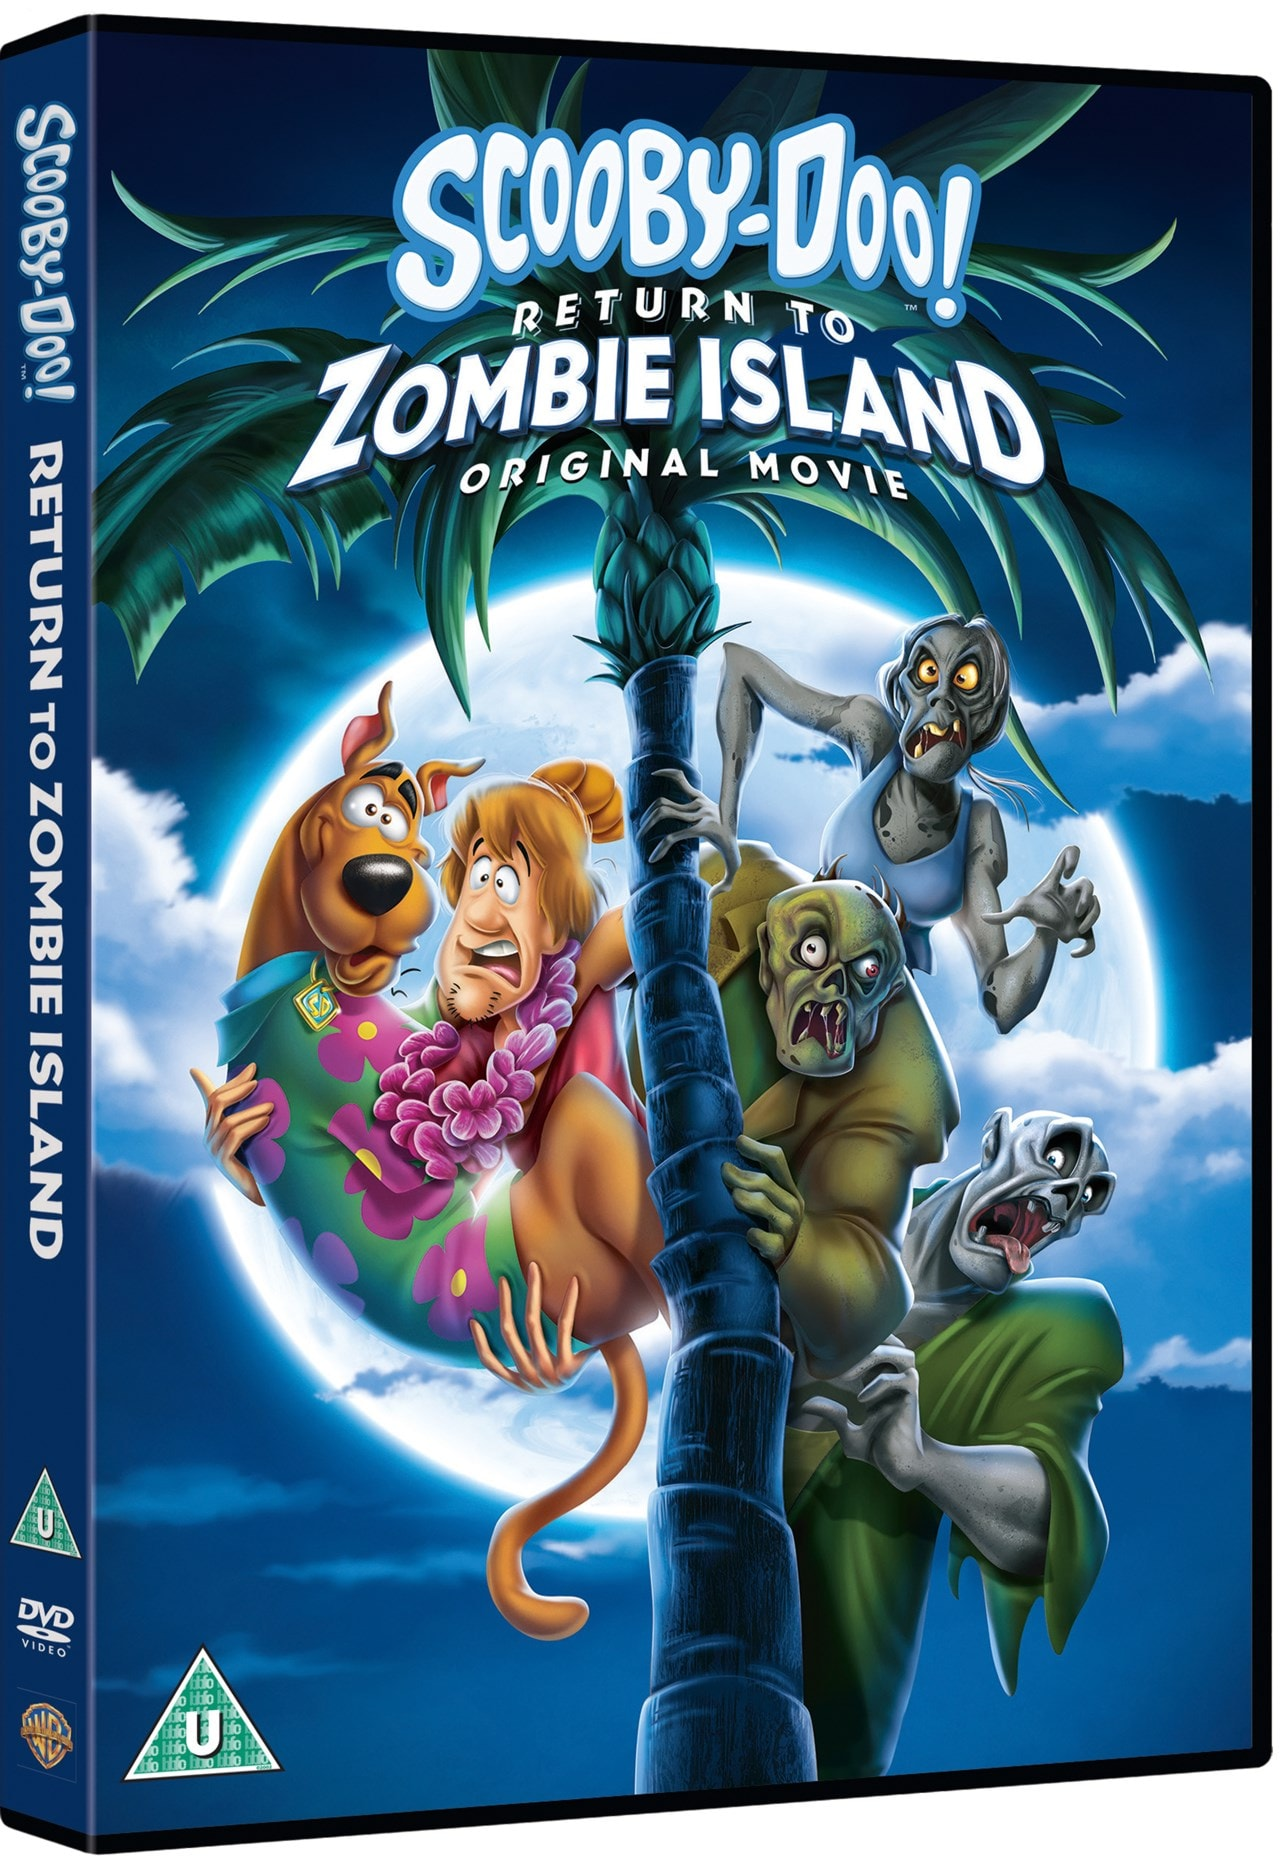 Scooby-Doo!: Return to Zombie Island - 2